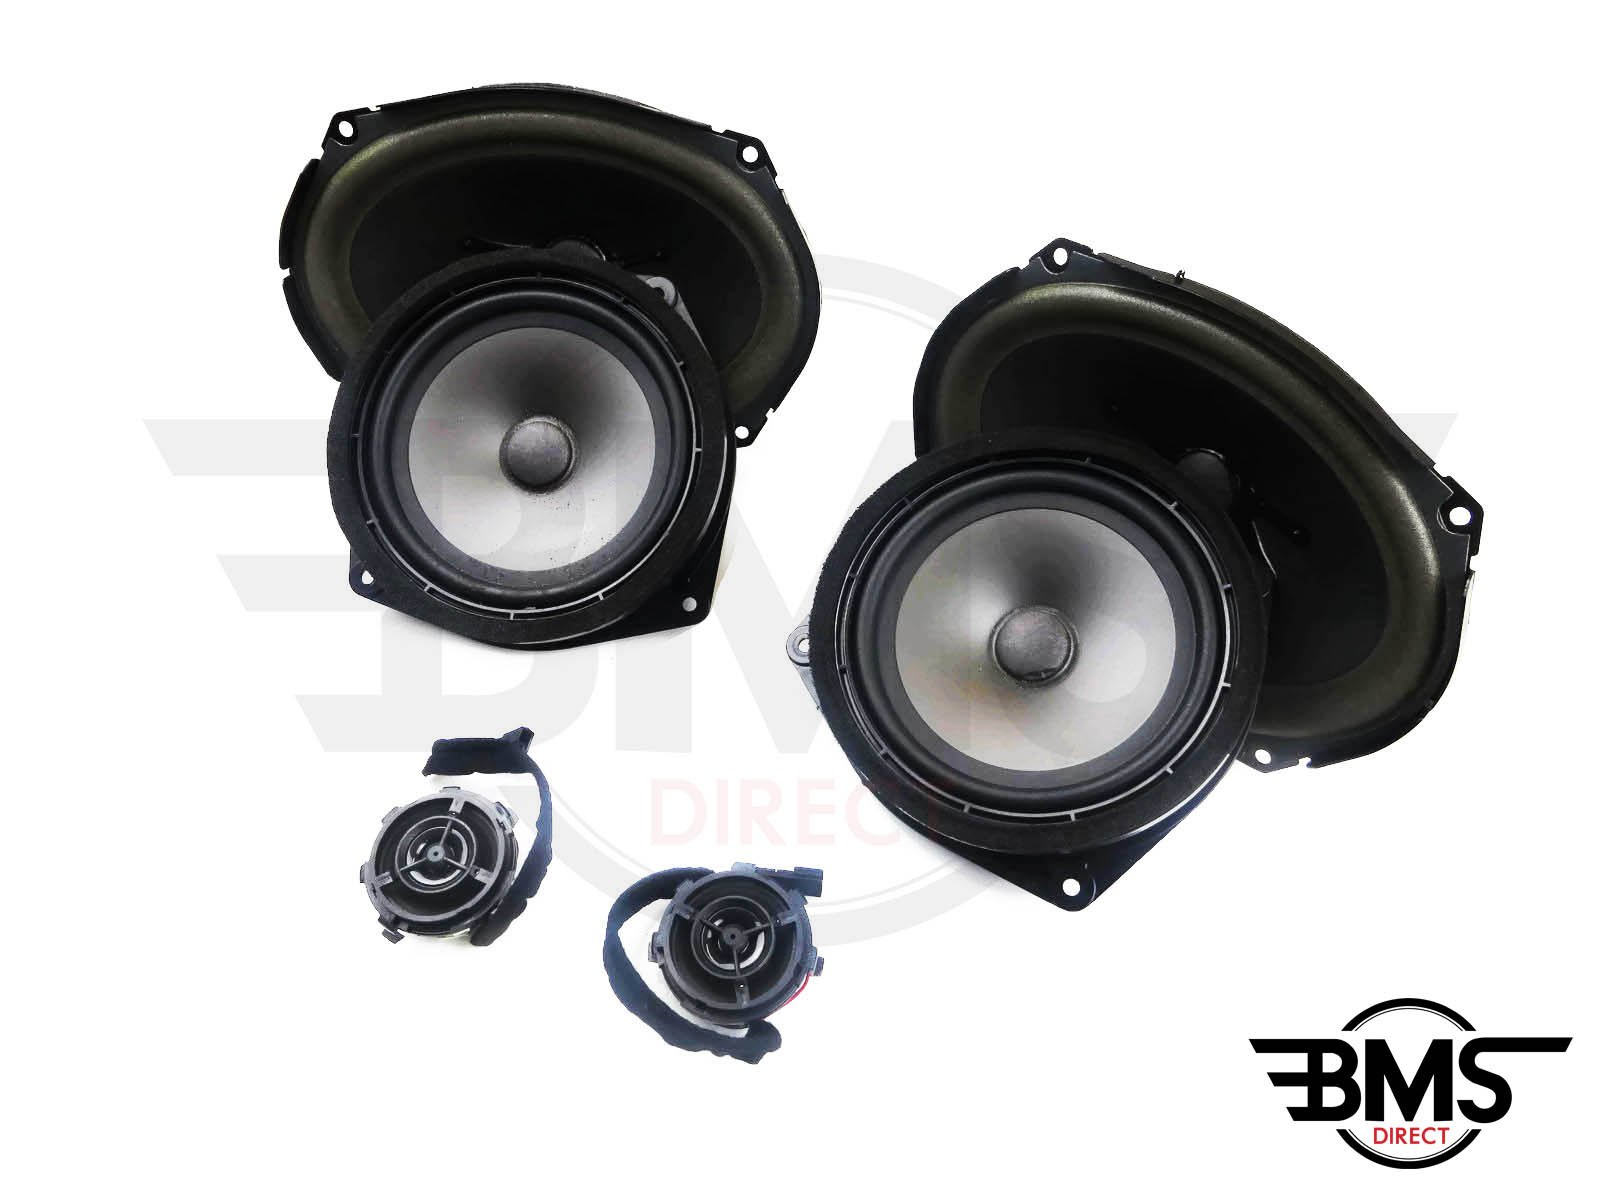 Harman Kardon 6 Pc Speaker Set R50 R53 Bms Direct Ltd